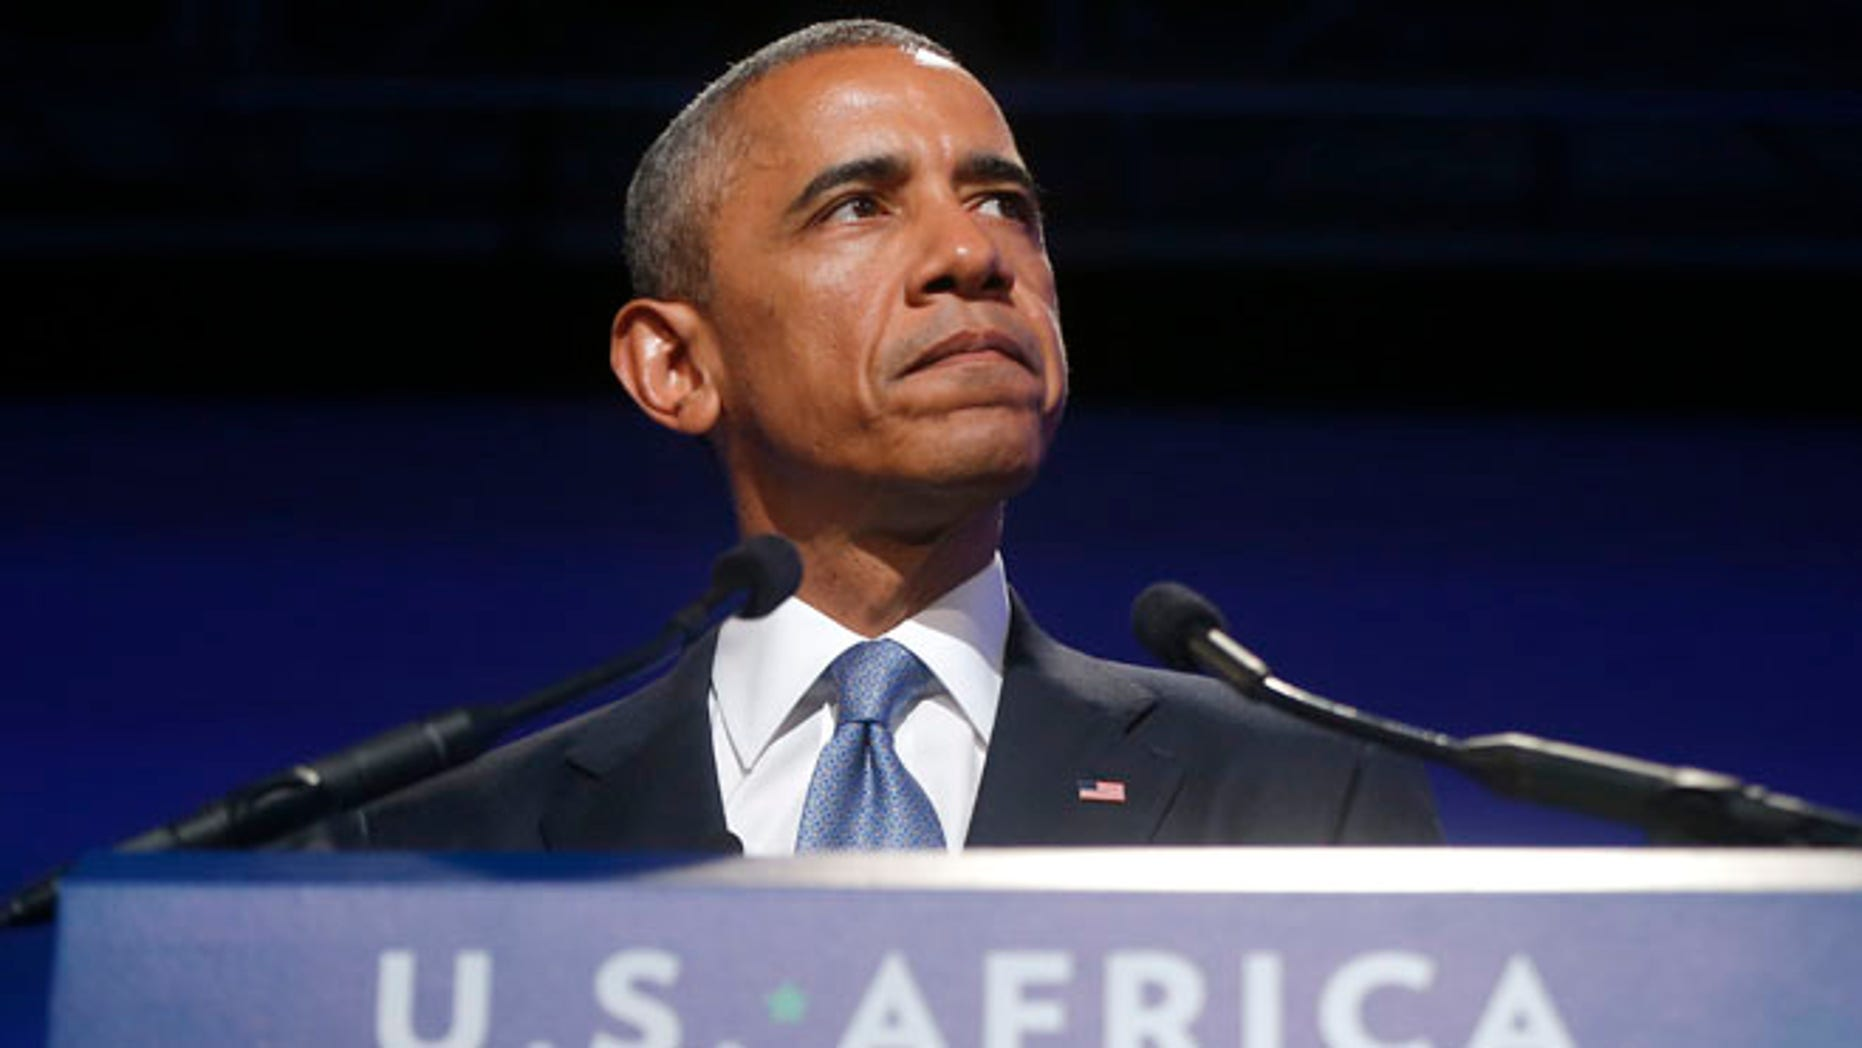 President Barack Obamaspeaks at the US Africa Business Forum during the US Africa Leaders Summit, Tuesday, Aug. 5, 2014, at the Mandarin Oriental Hotel in Washington.